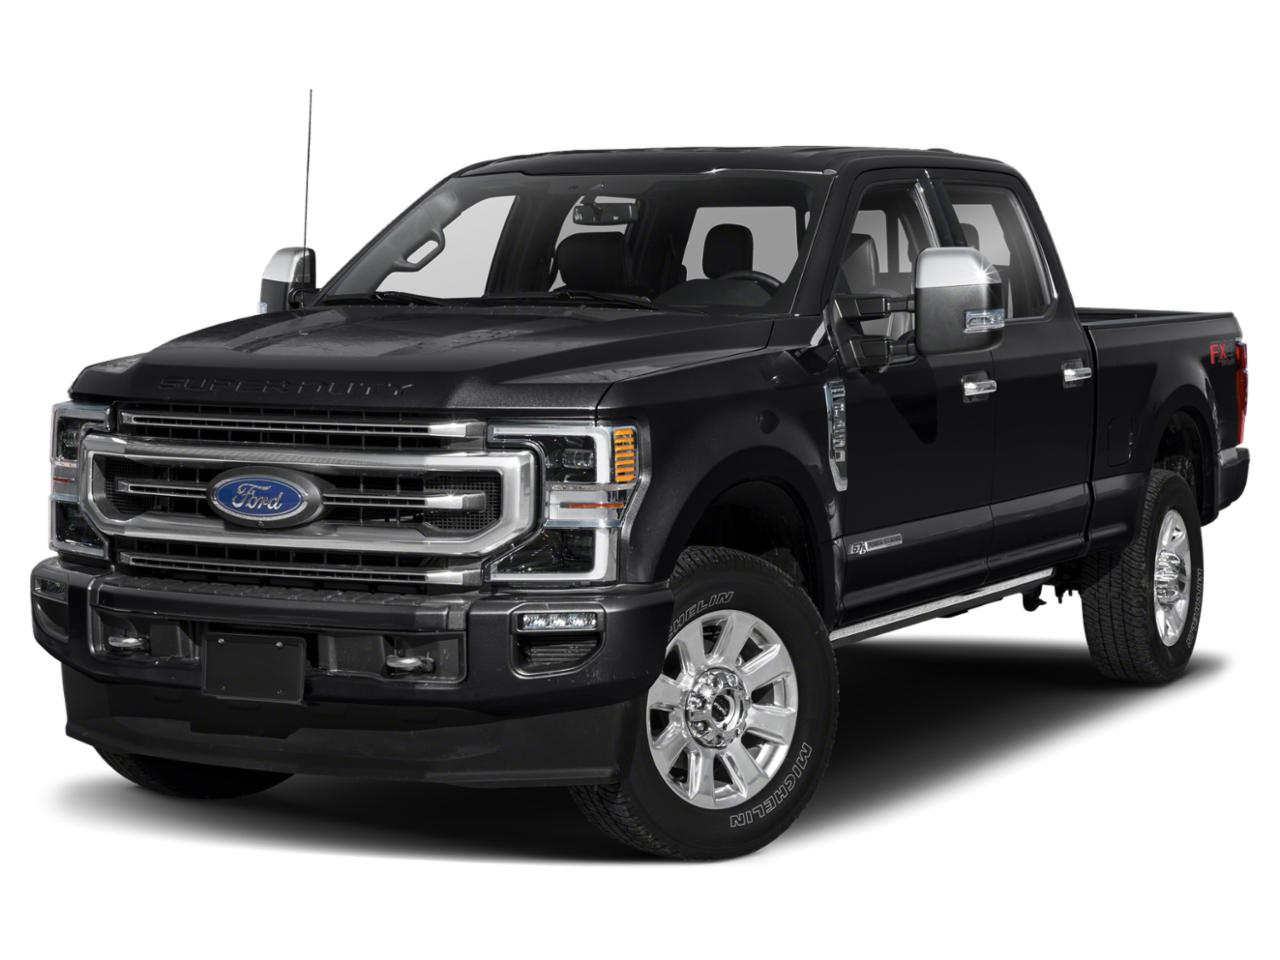 2020 Ford Super Duty F-250 SRW Vehicle Photo in Elyria, OH 44035